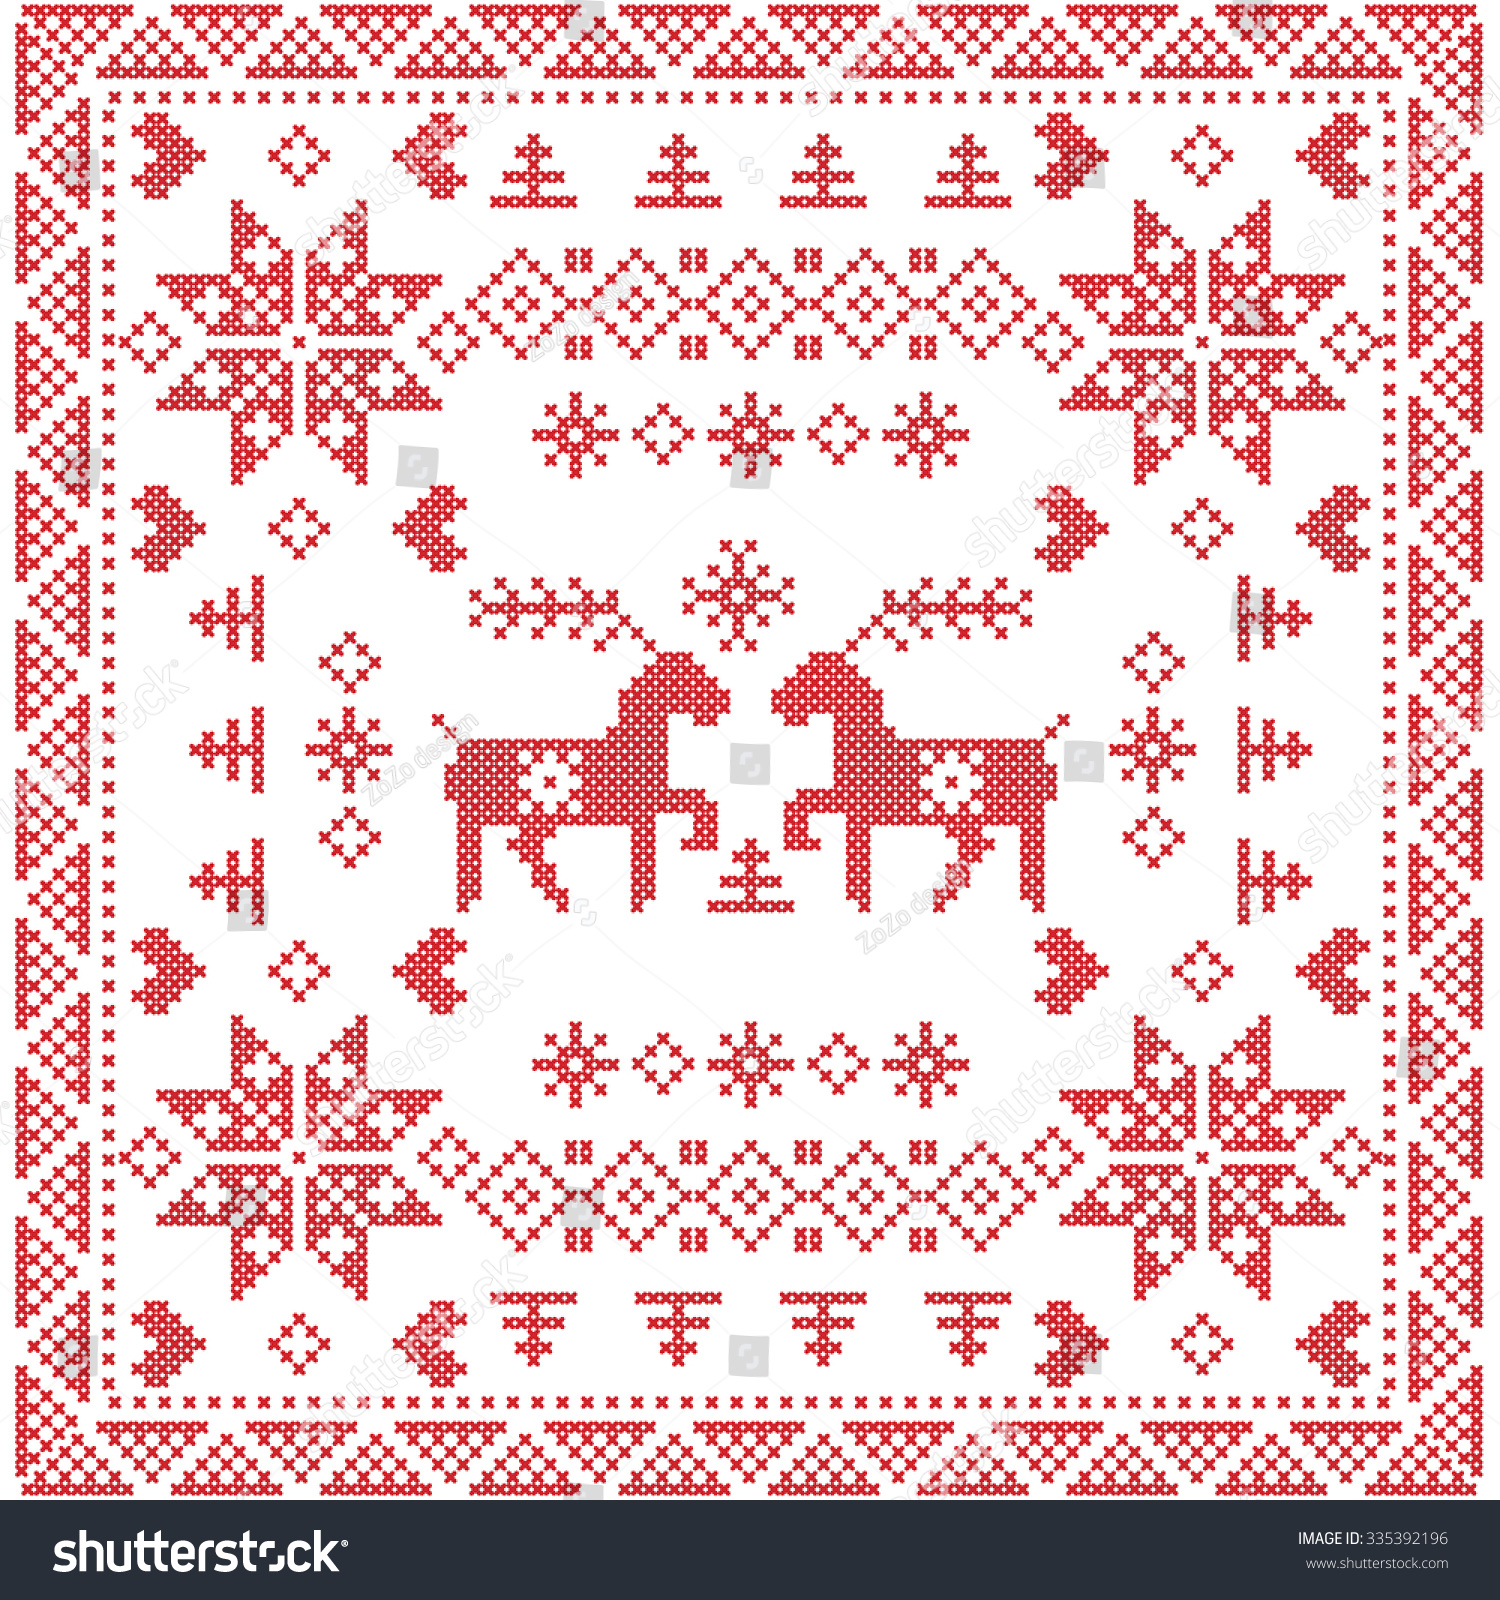 style nordic winter stich knitting seamless pattern in the square tile shape including